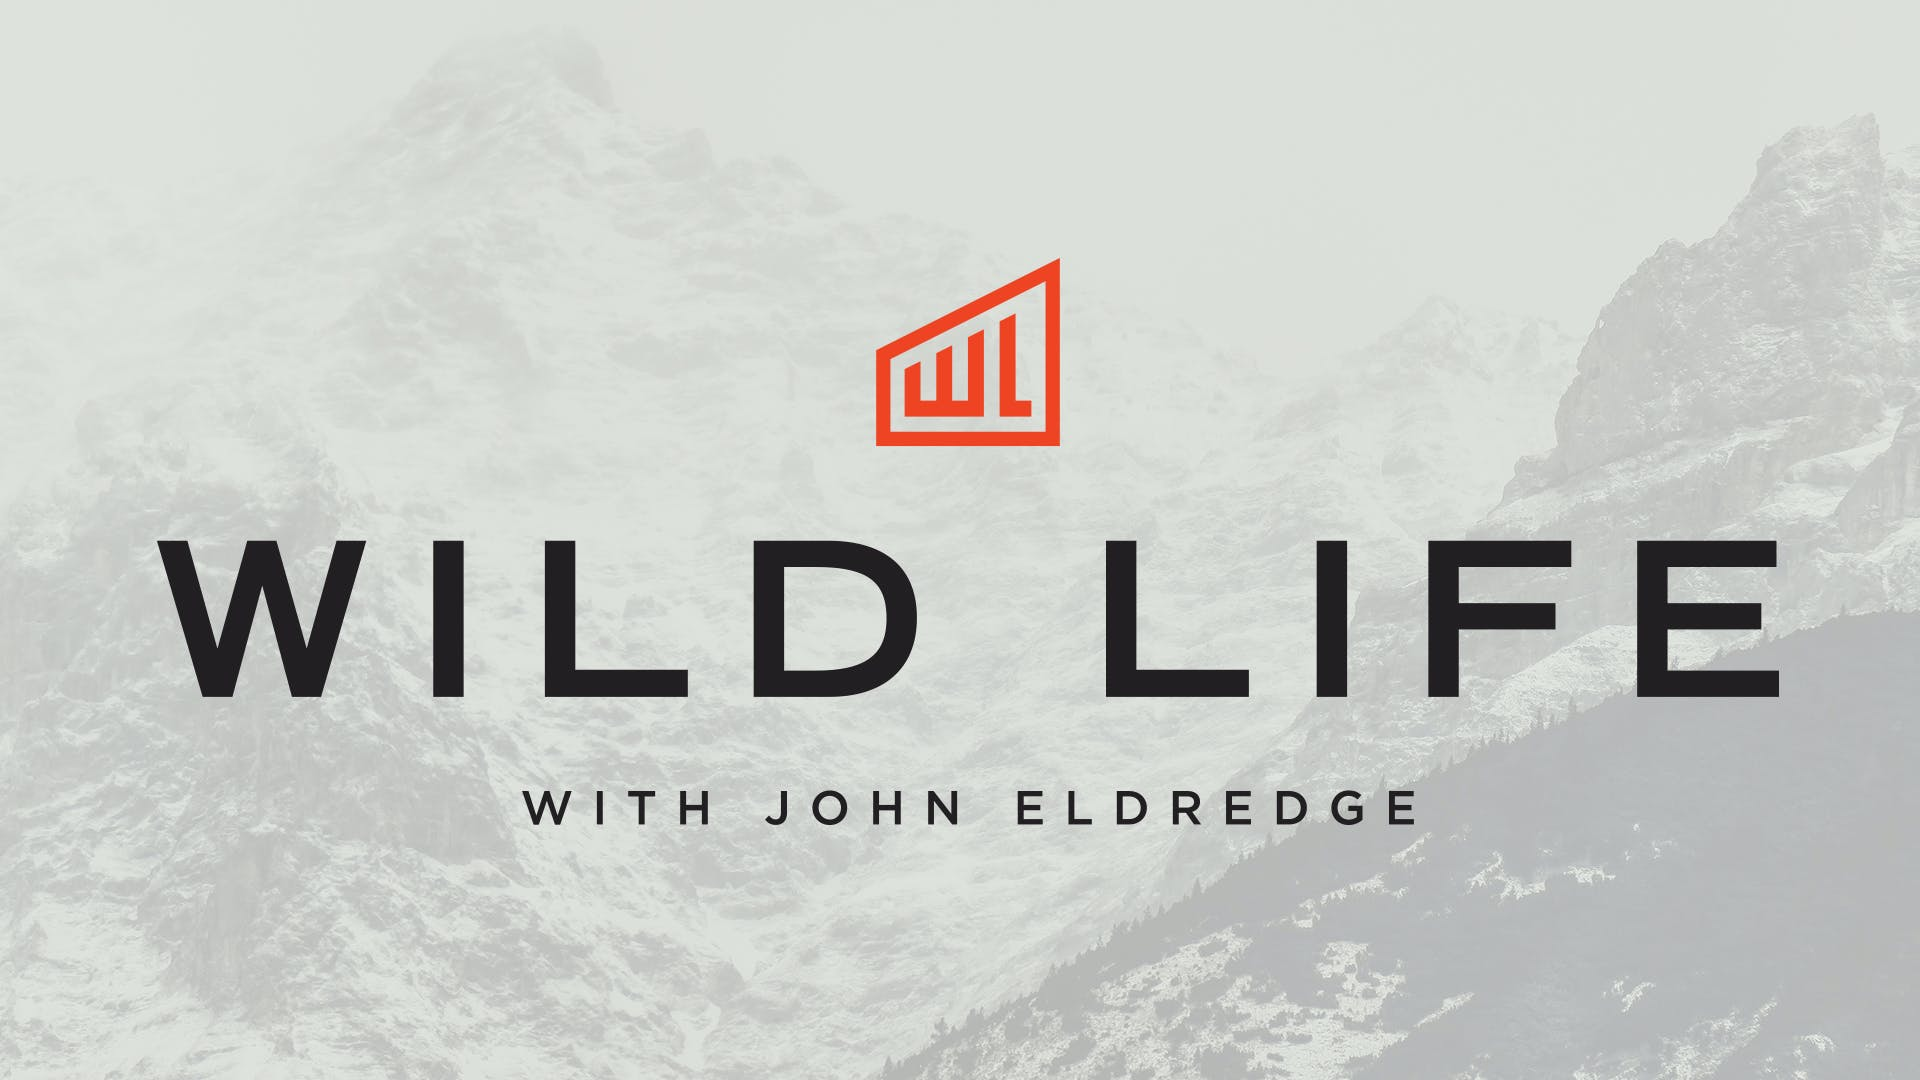 10 Manly Ideas For Leading a Wild Life LifeGroup